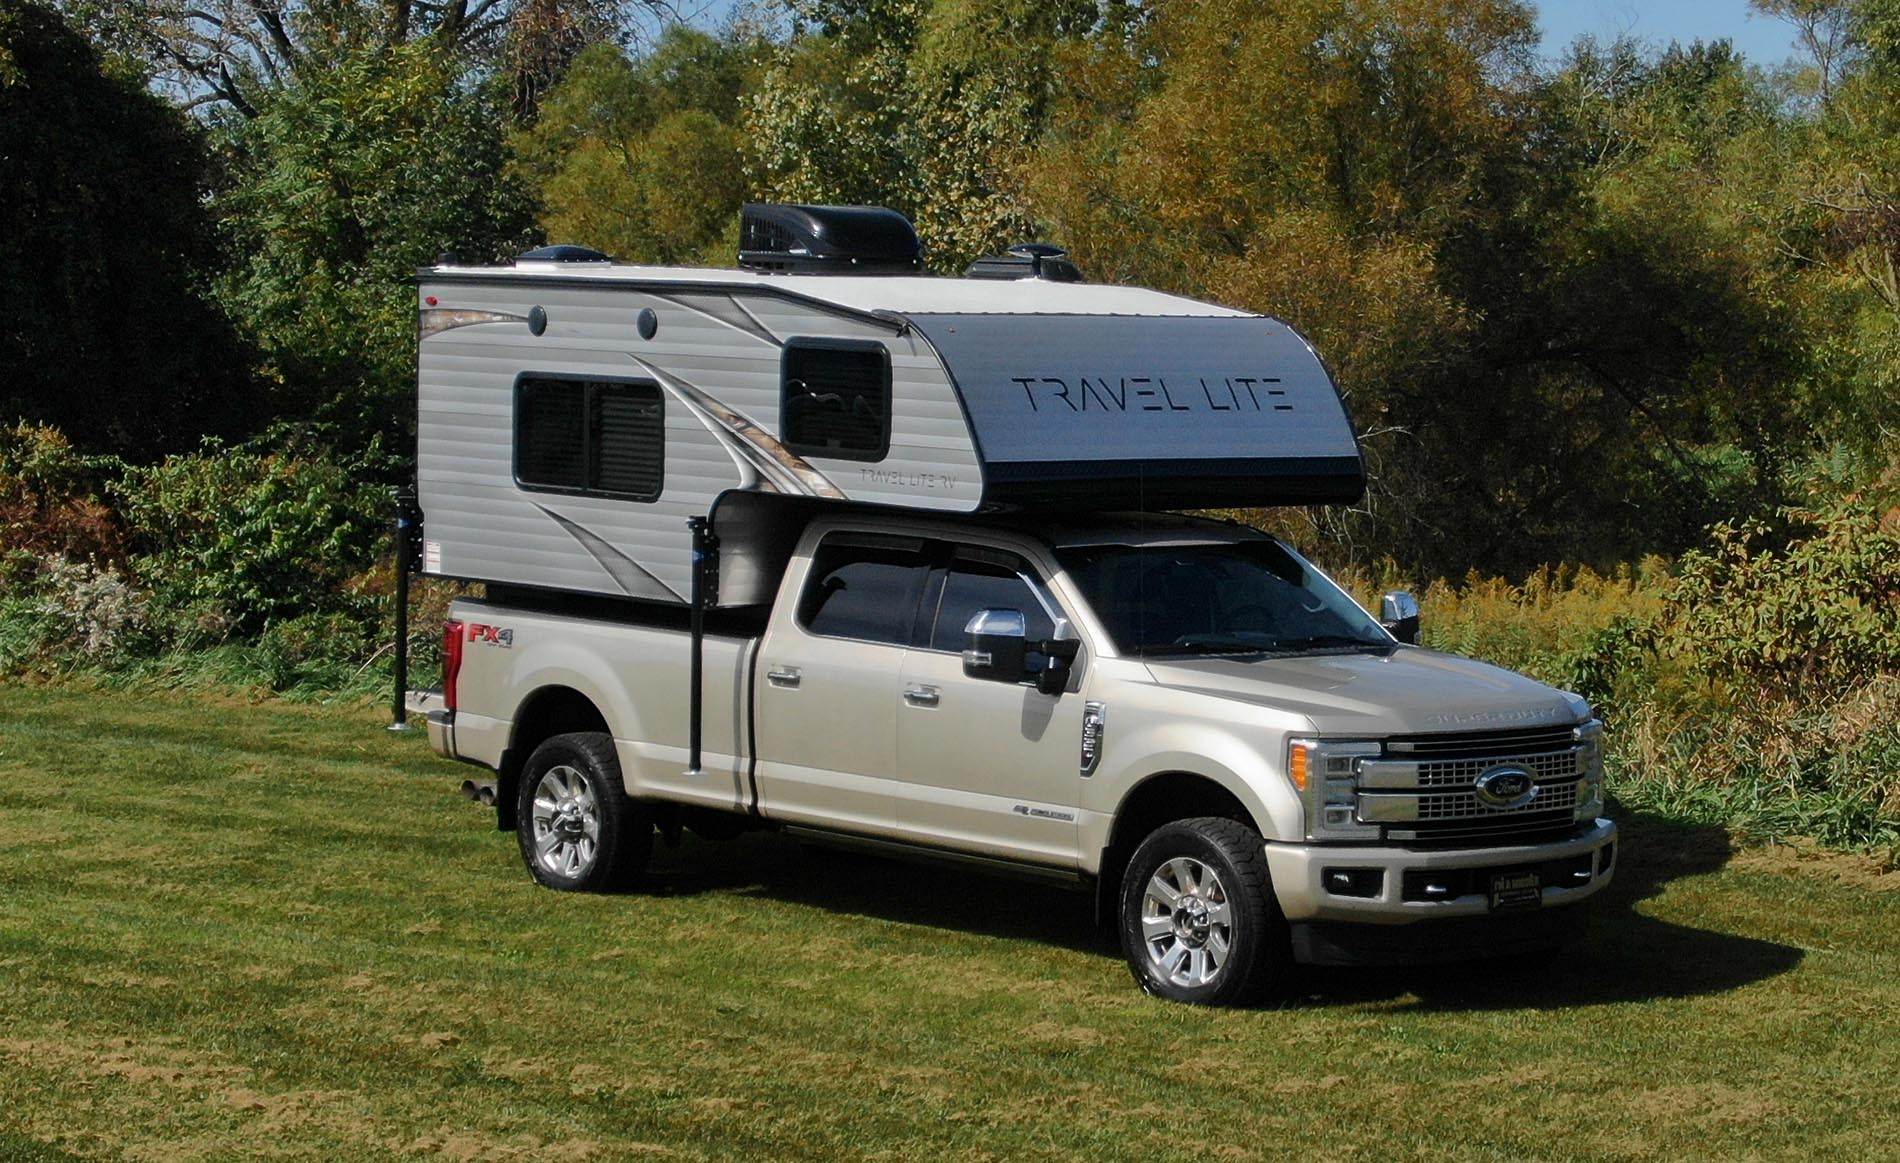 Exterior of a Travellite RV slide on truck camper